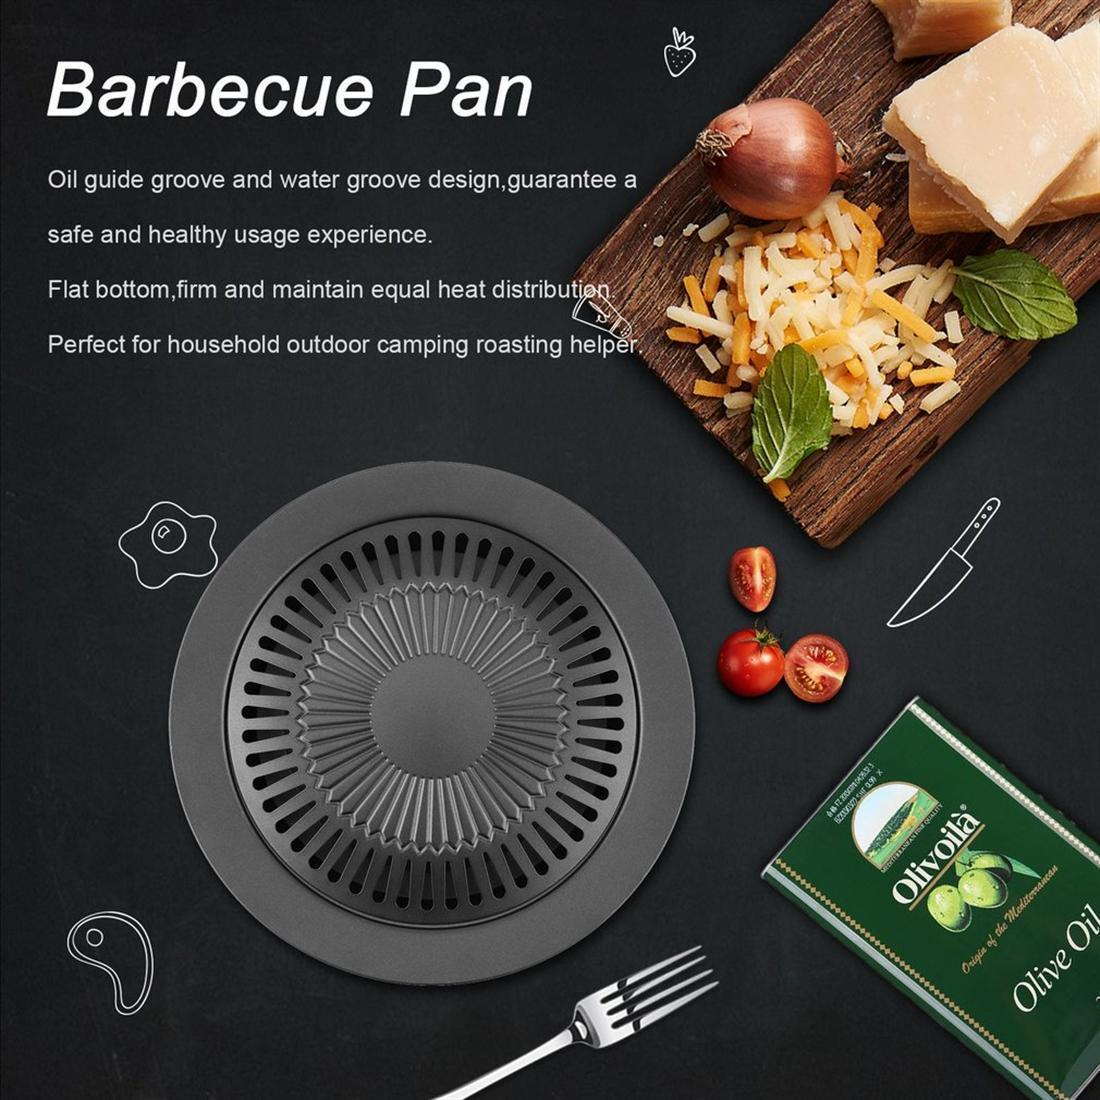 BBQ Roast Tray Non-Stick Round Smokeless Indoor Barbecue Grill Pan with Brush Best selection as BBQ cooking tools - Black